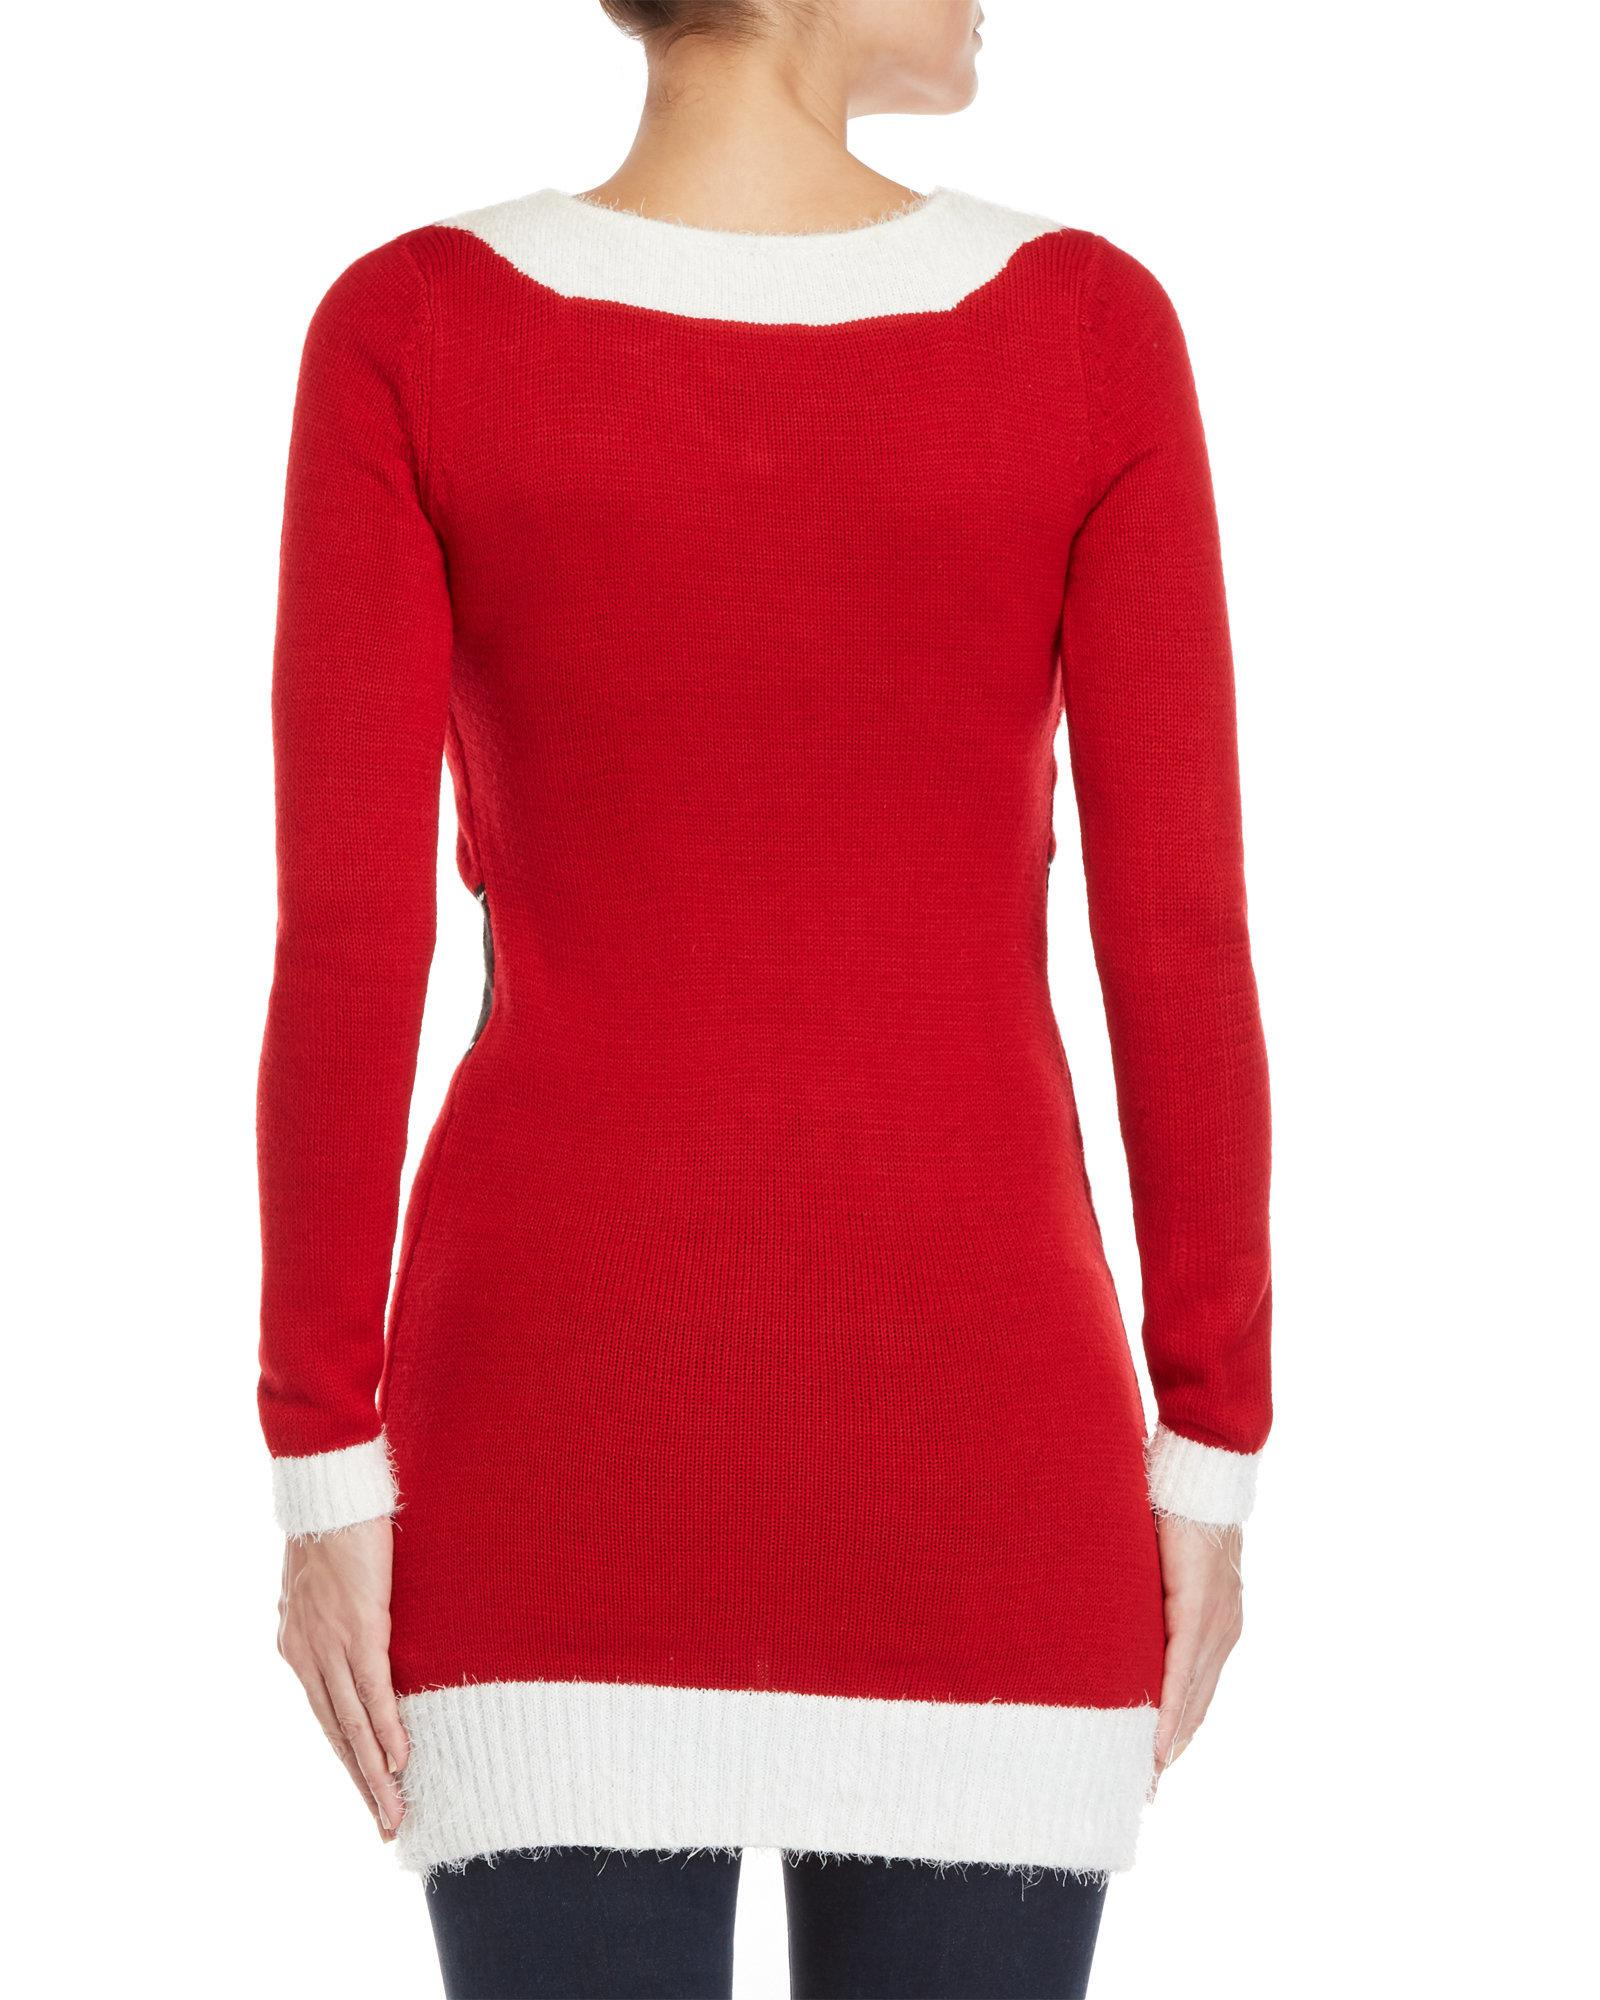 Lyst - Love By Design Santa Ugly Christmas Sweater Dress in Red